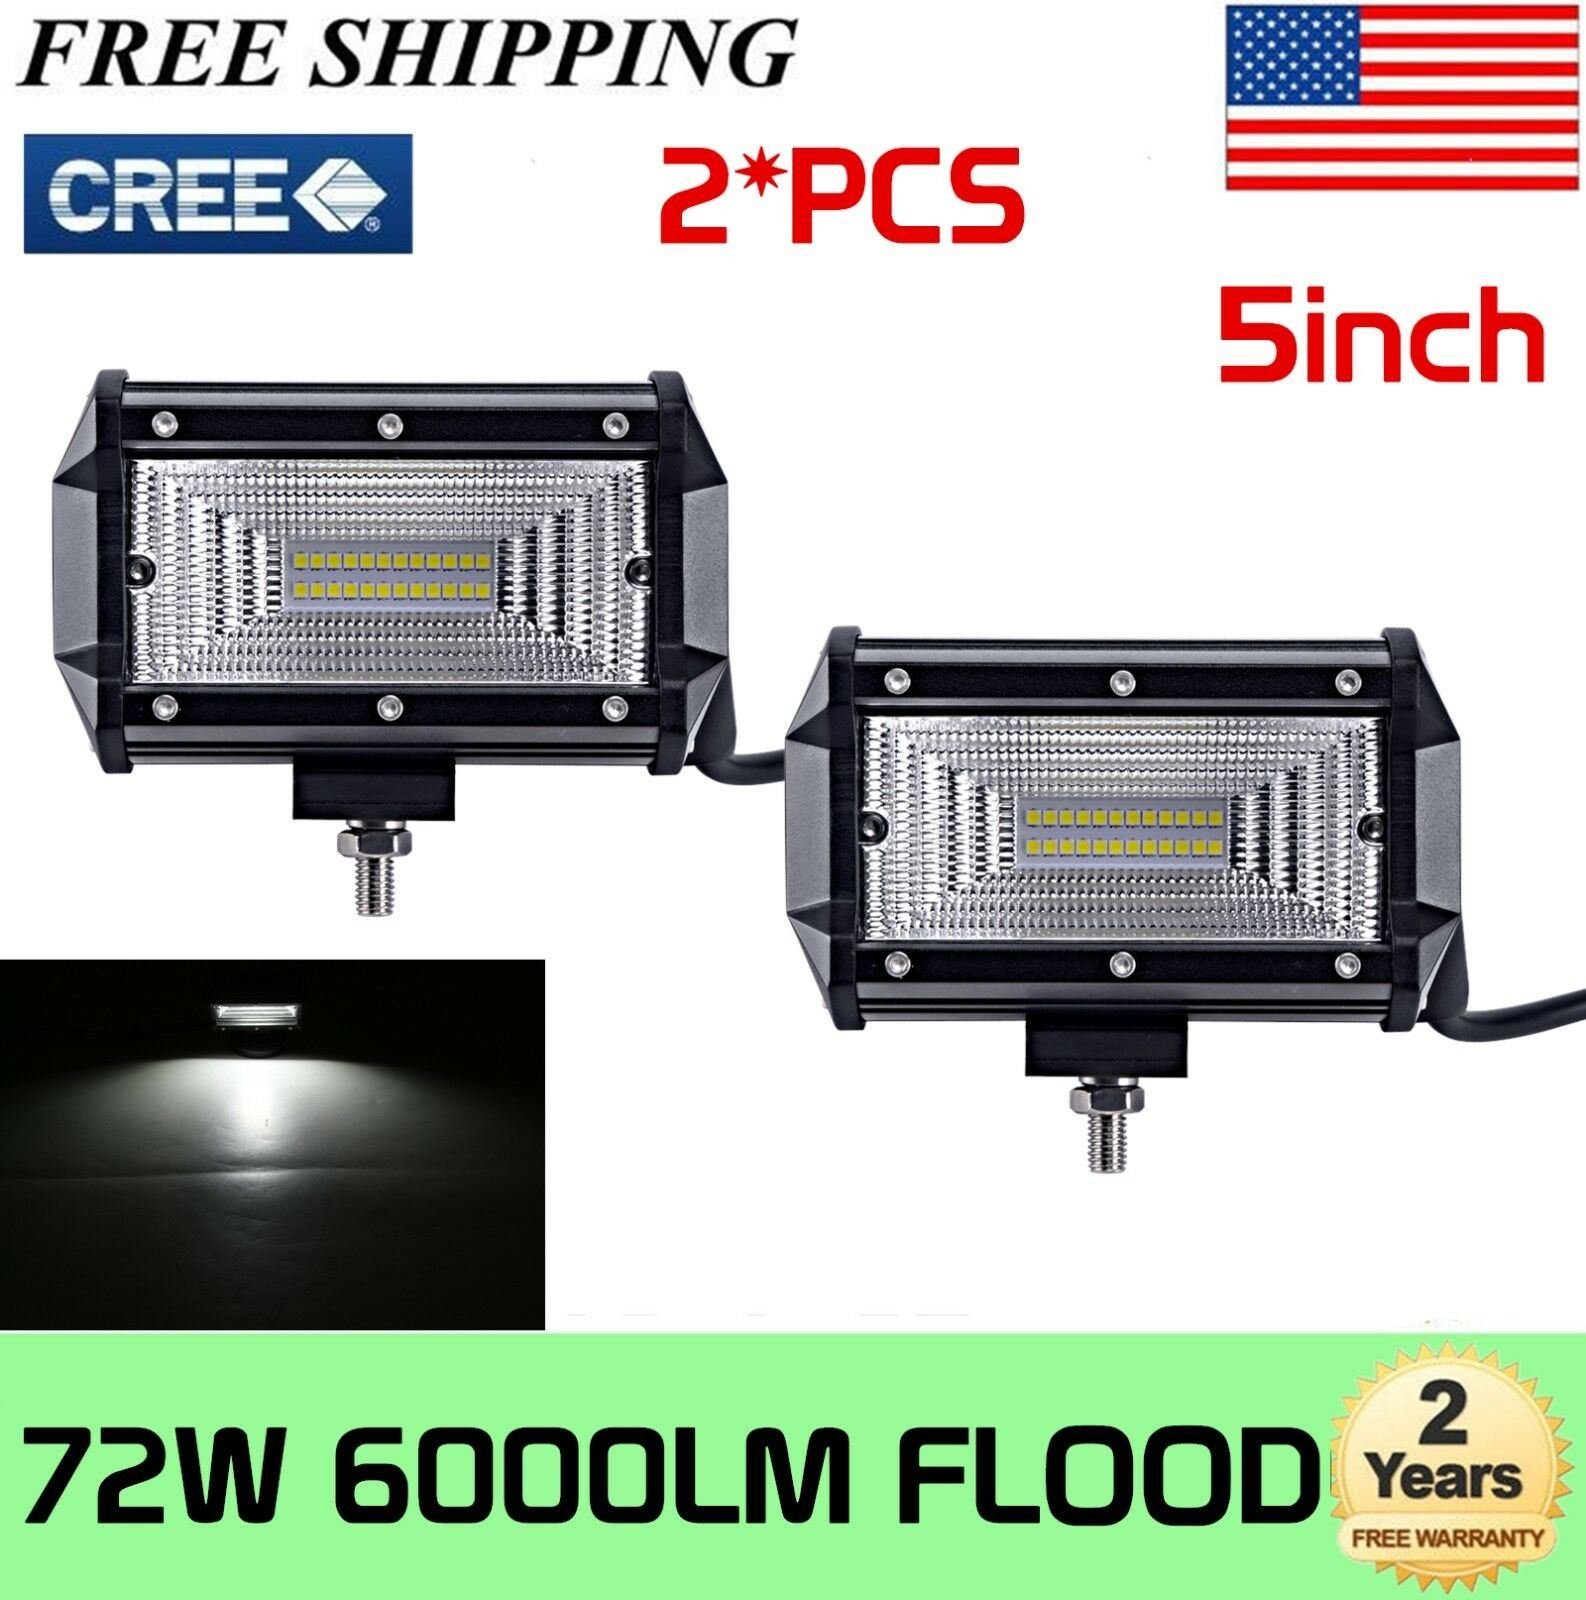 Triple Rows Upgrade Off Road Lights Light Bar WOWLED Light Bar 2 x 5 Inch 72W Yellow Amber Flood LED Light Bars IP67 Offroad Driving Lamp Bar for Car Truck UTE 4x4 12V 24V